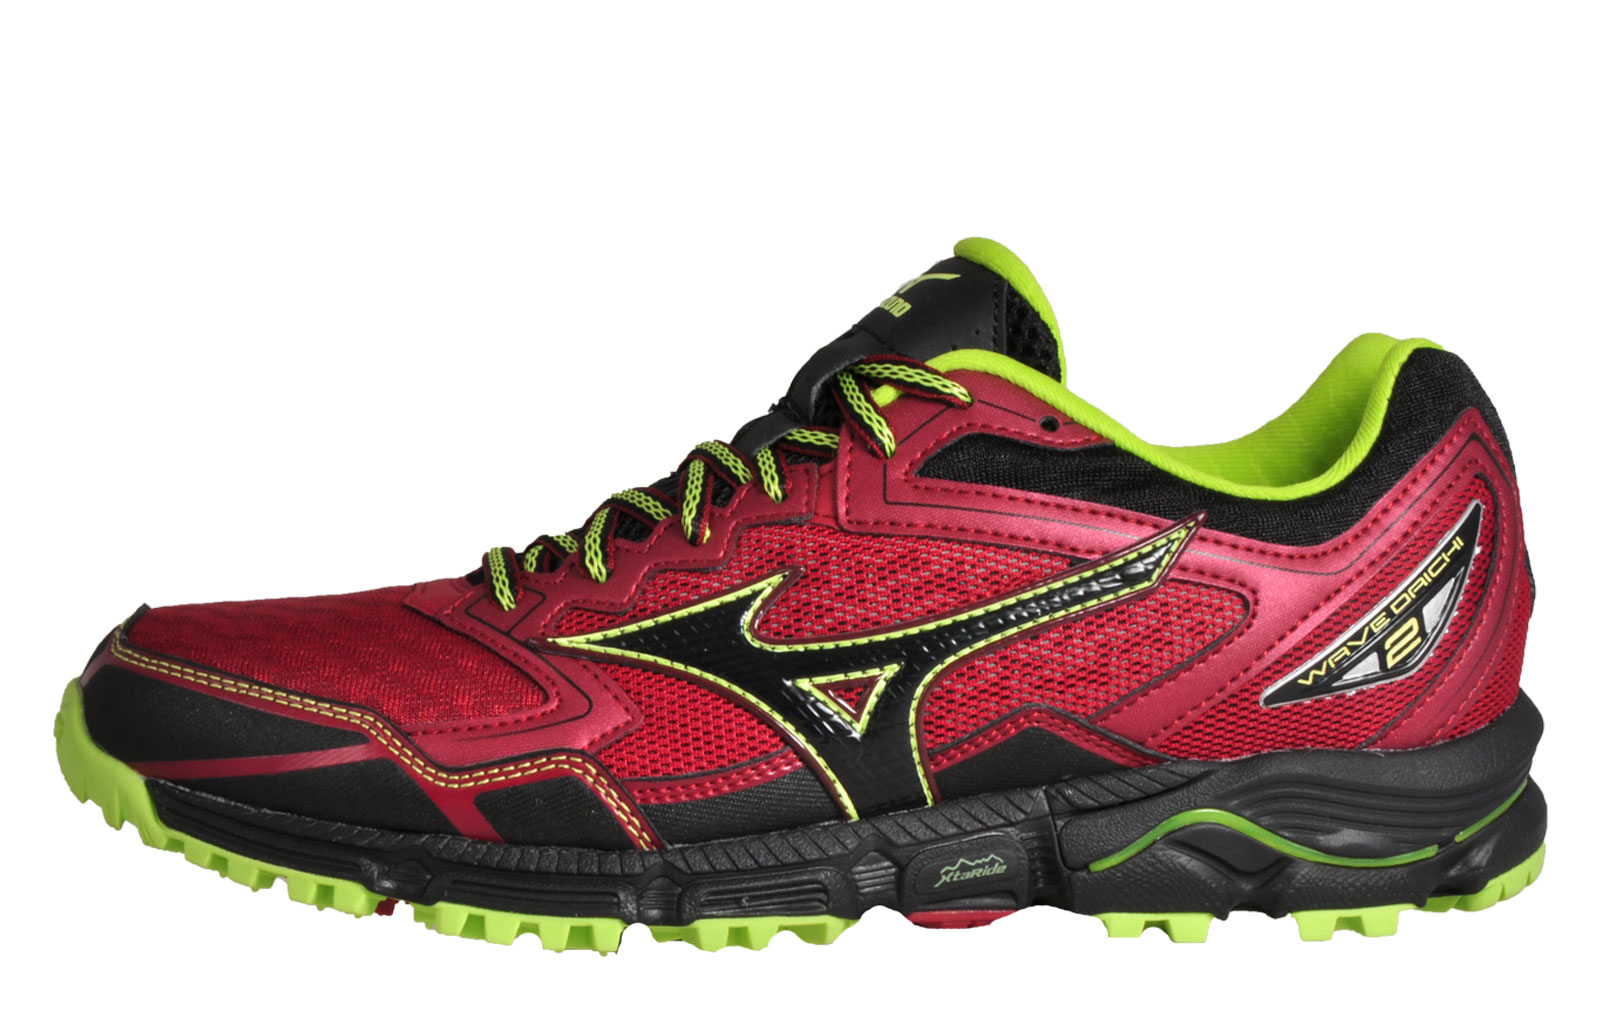 Mizuno Mens Shoes Clearance